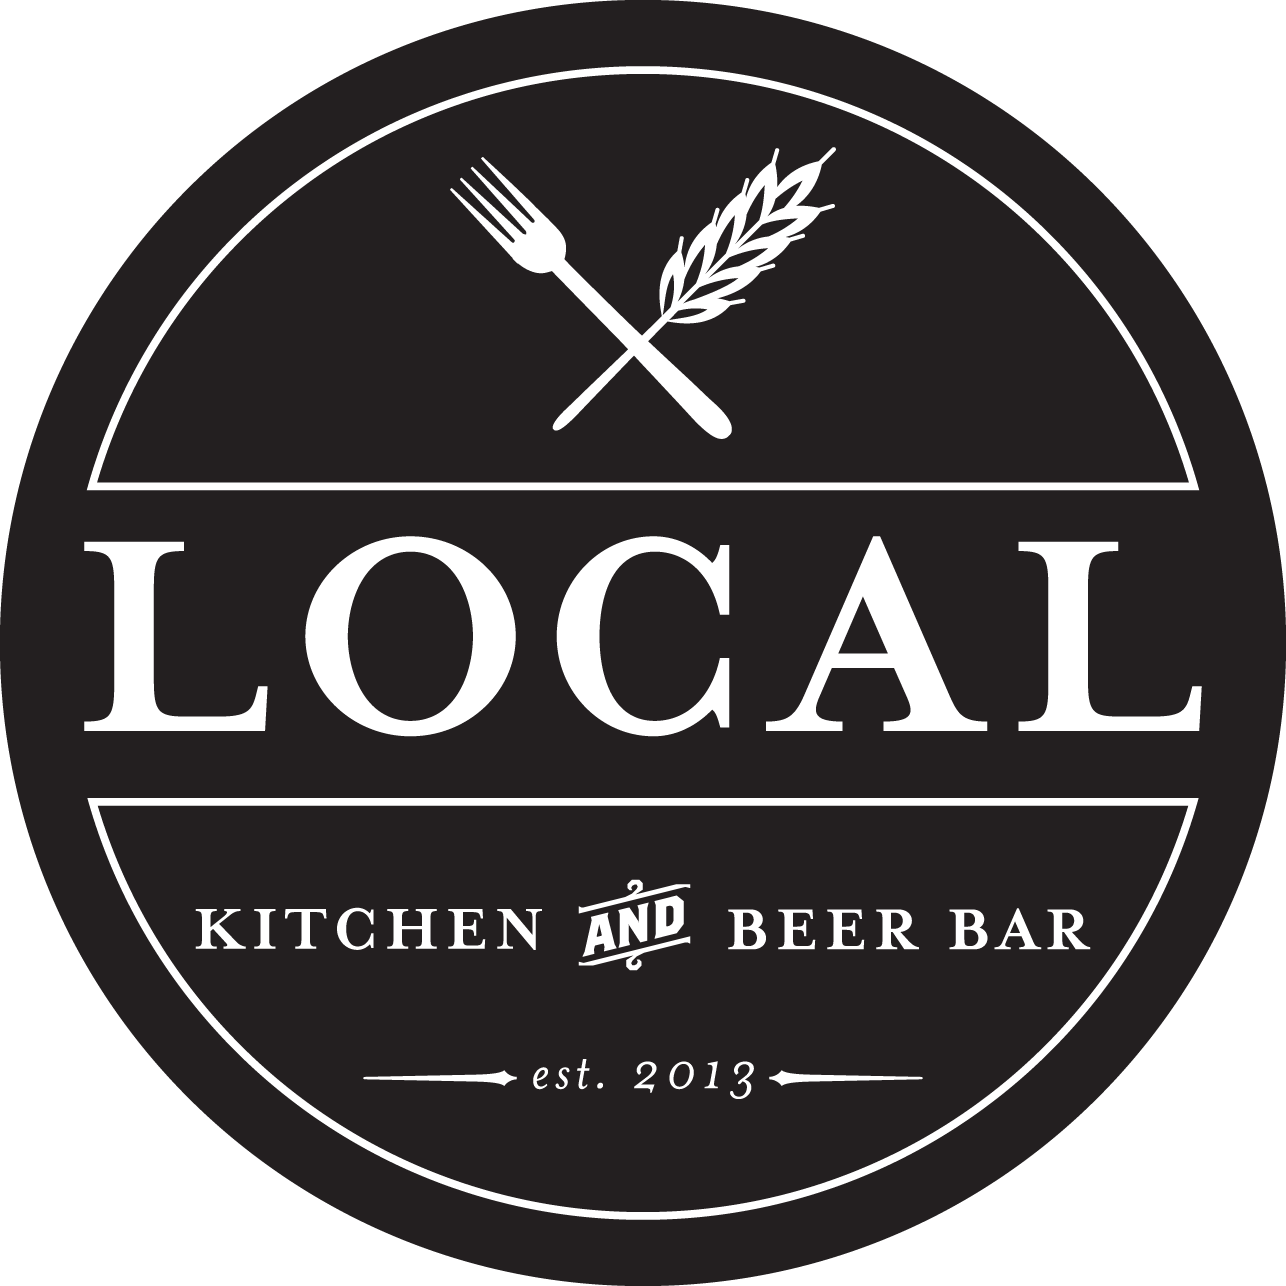 Local Kitchen And Craft Beer Bar, Fairfield, CT